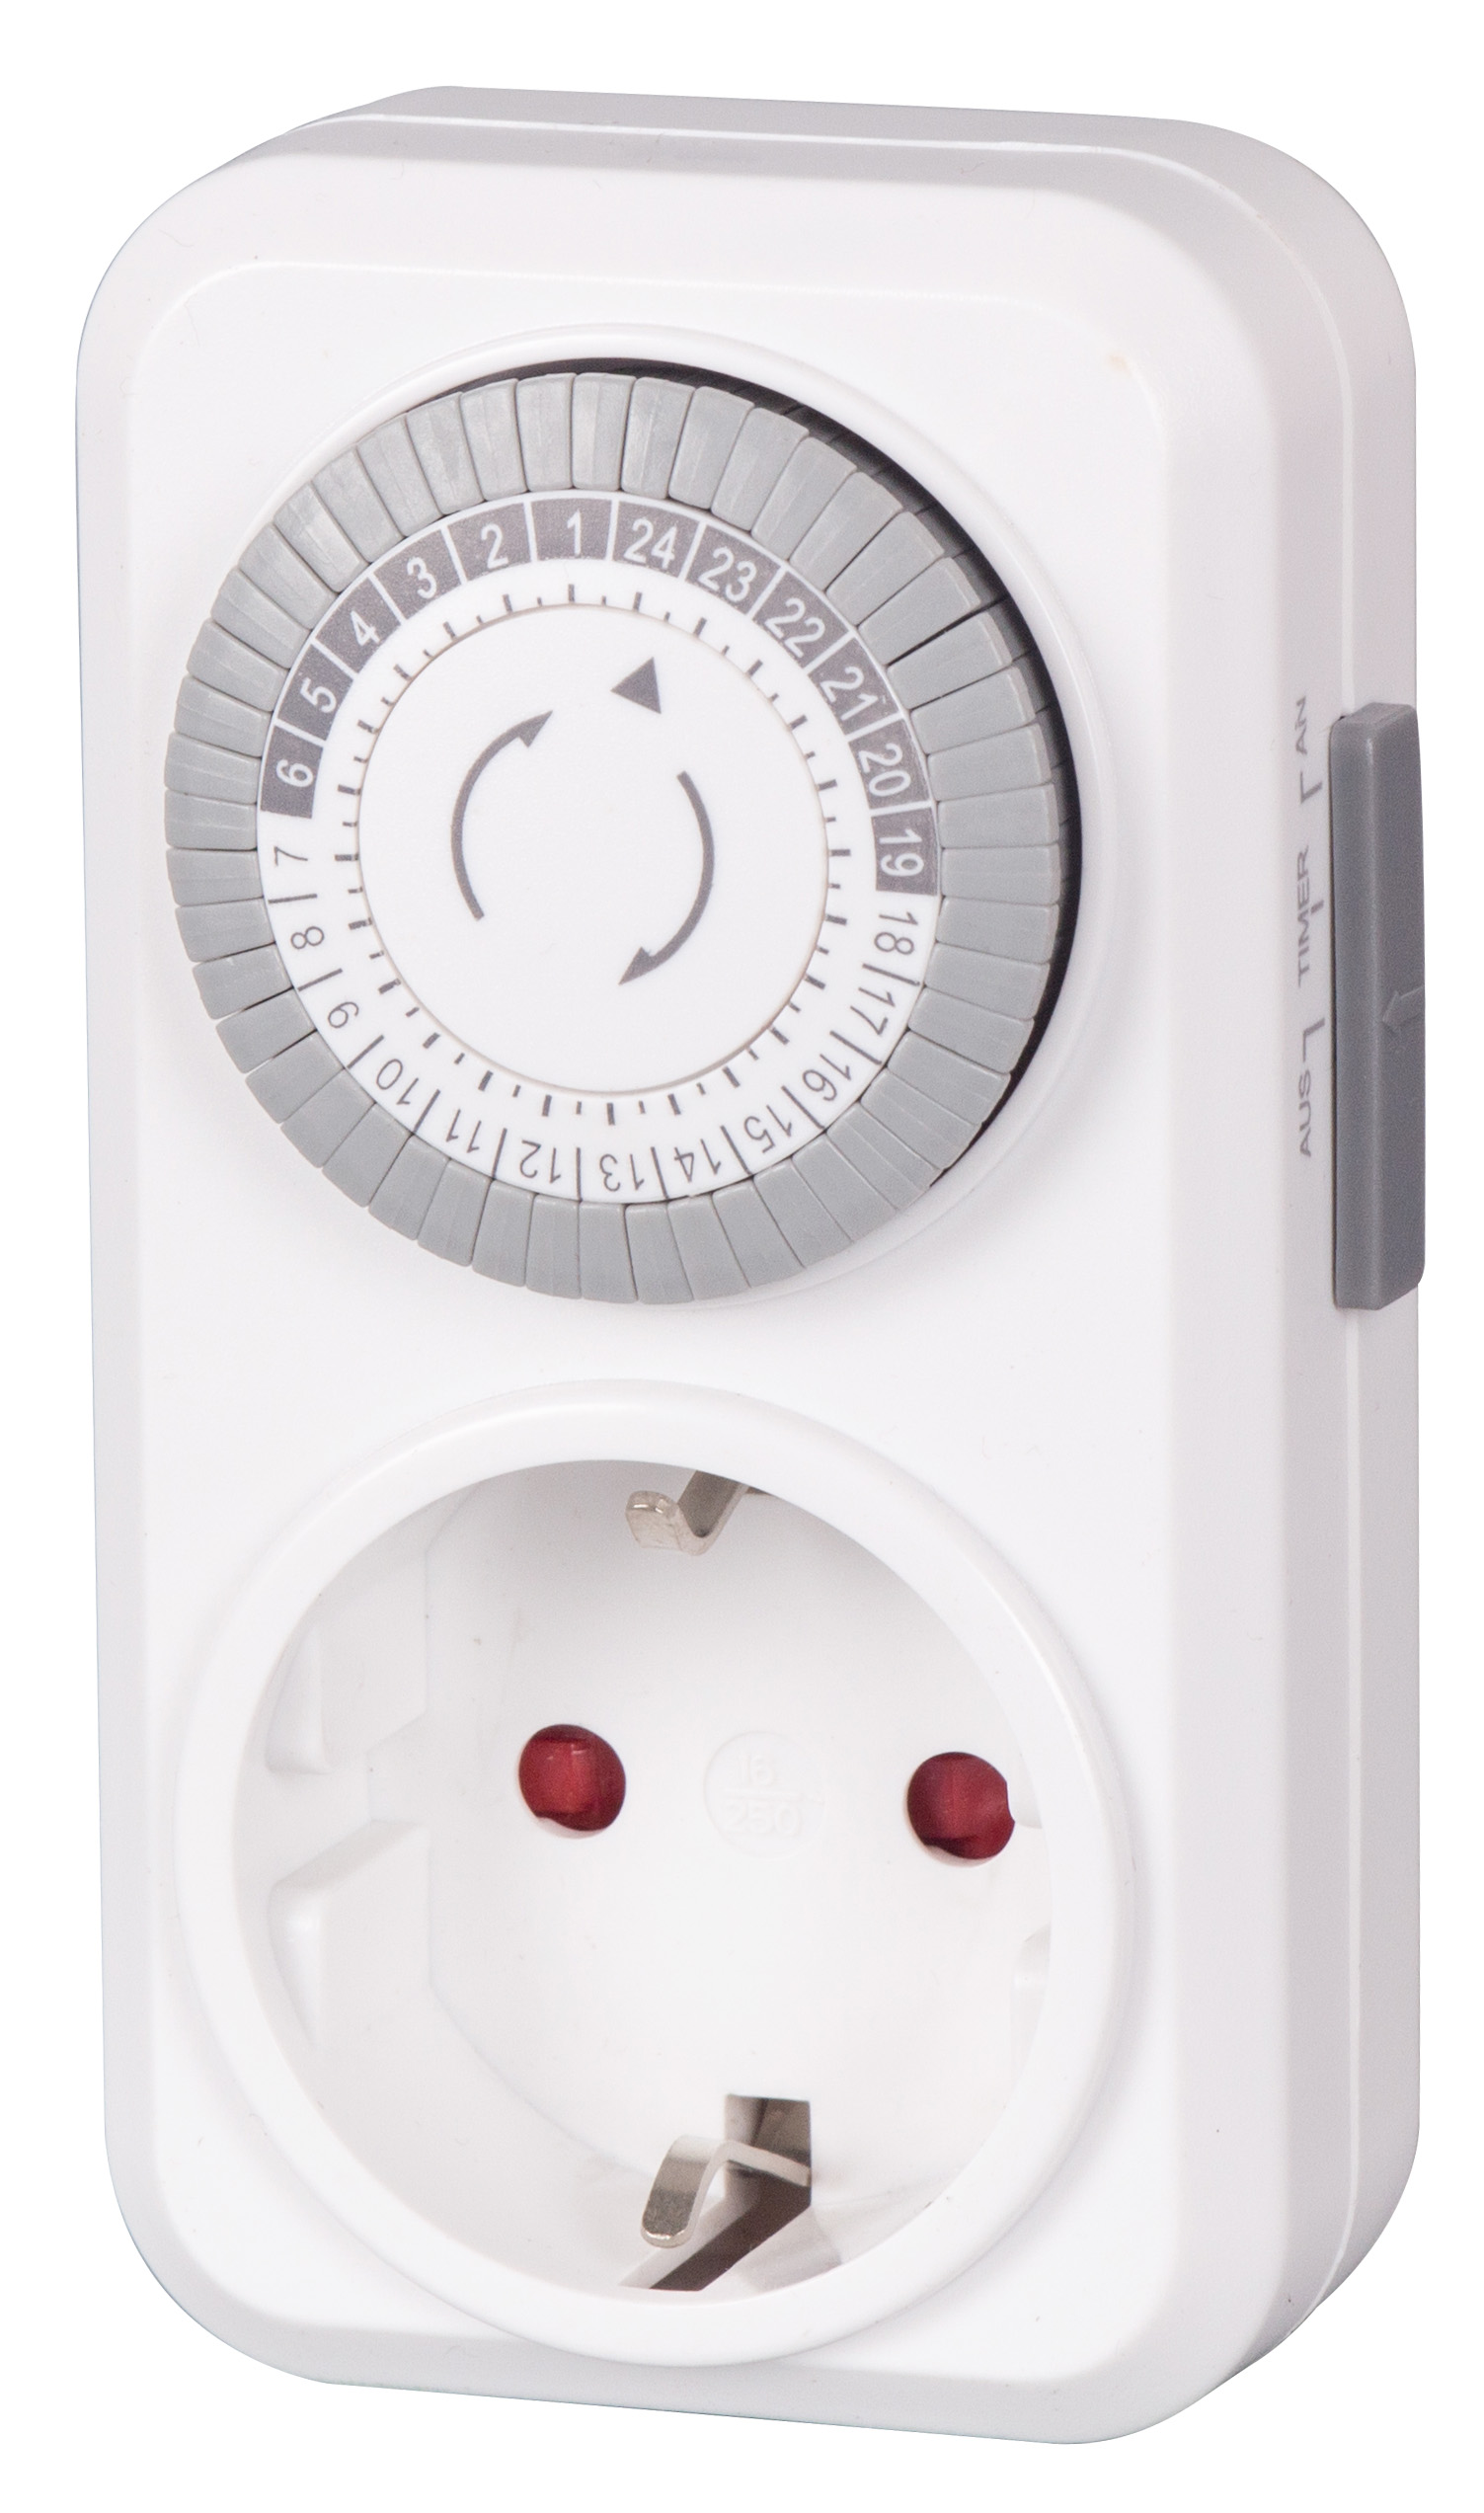 24 hours mechanical timer /programmable timer /plug-in timer